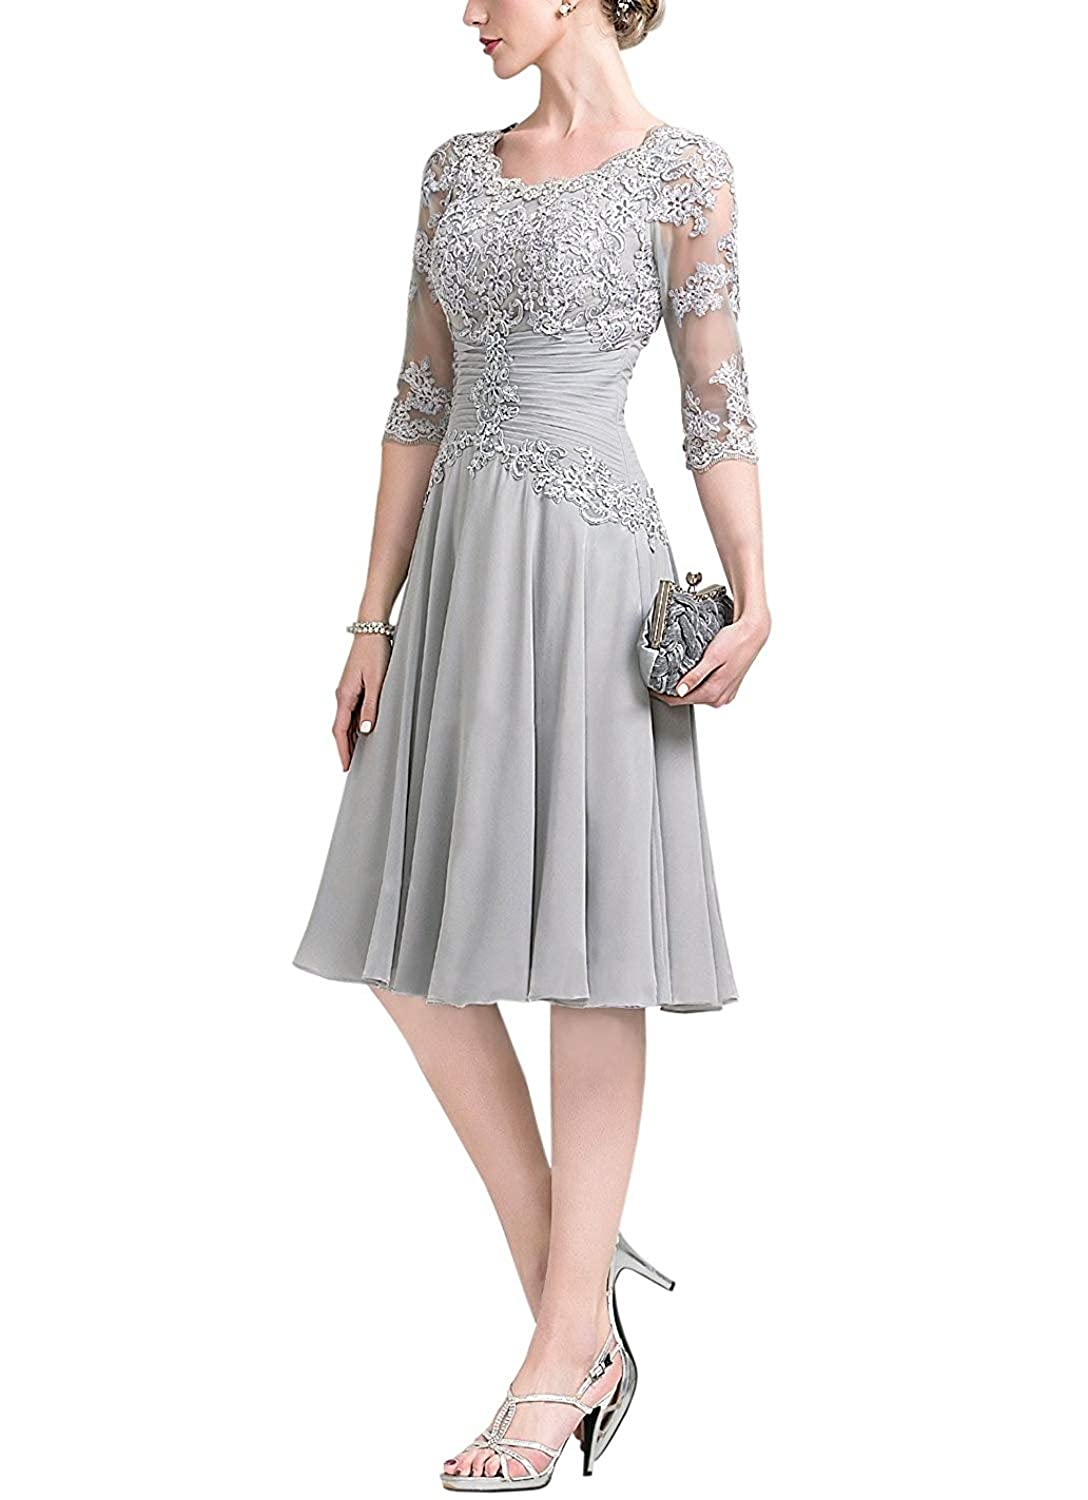 9d0014960c66 Homecy Short Chiffon Bridesmaid Dresses Lace Appliques Half Sleeve Wedding  Evening Party Dresses at Amazon Women's Clothing store: